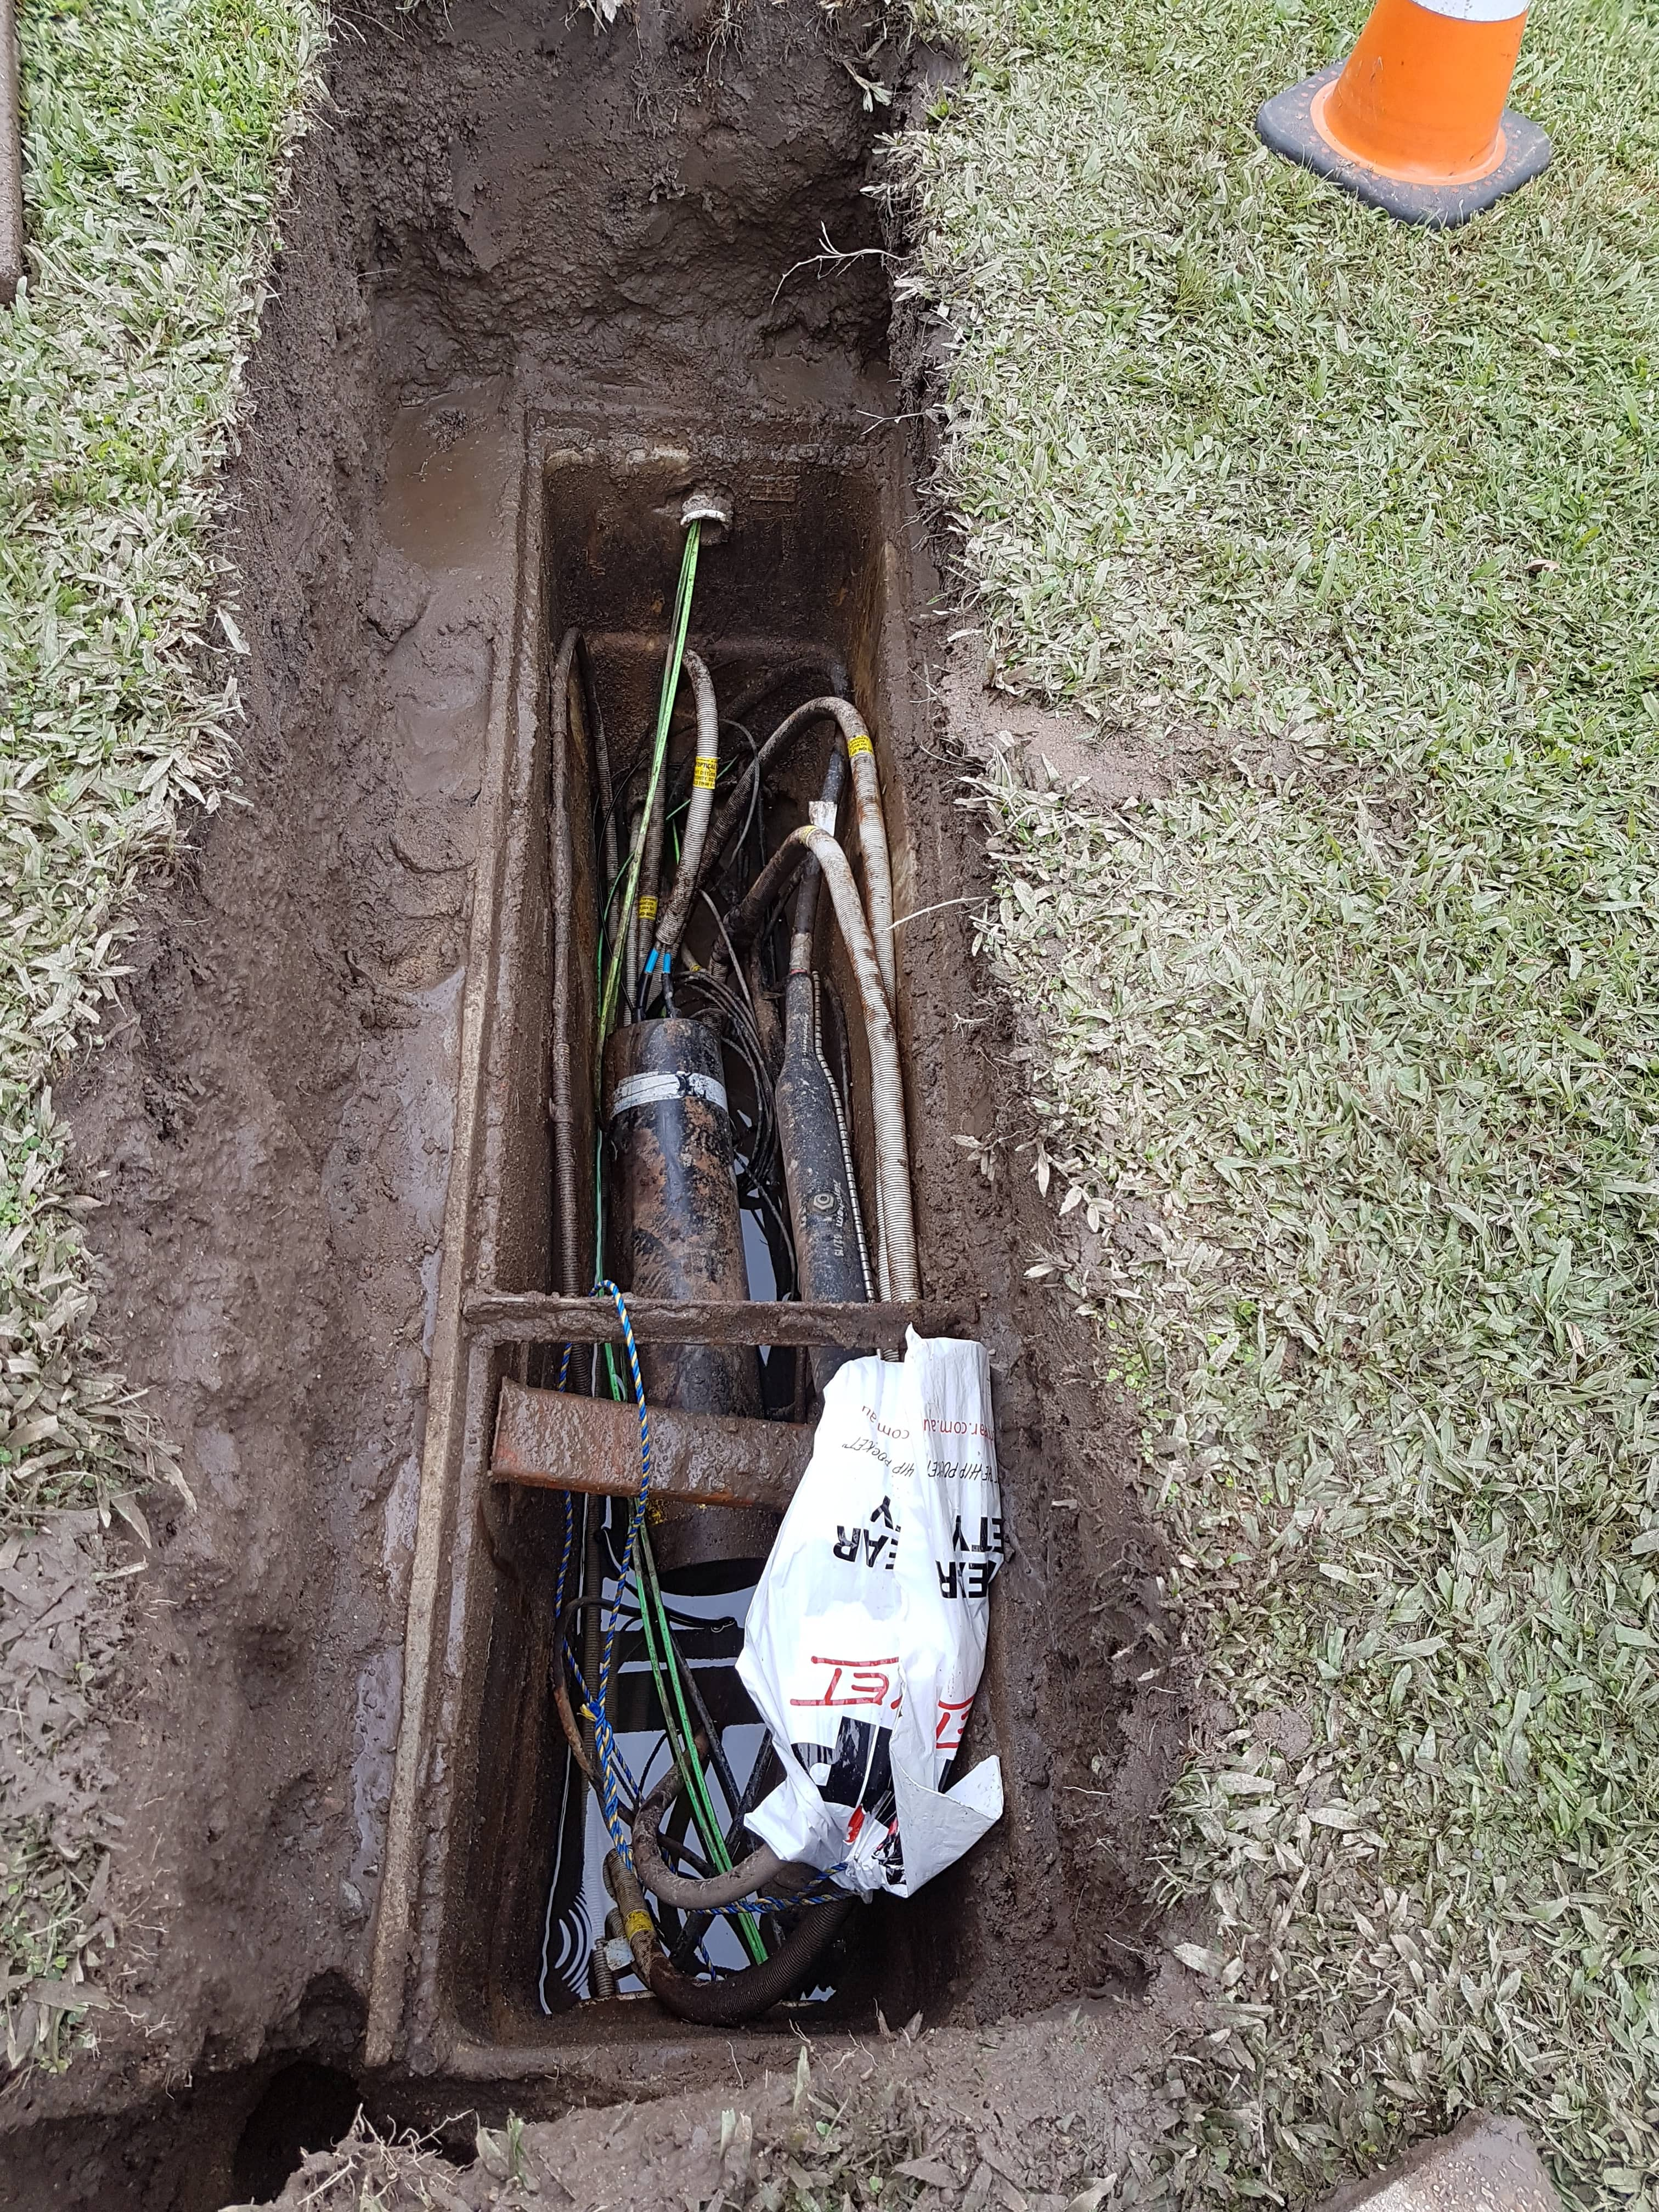 Exposing Buried Telstra Pit